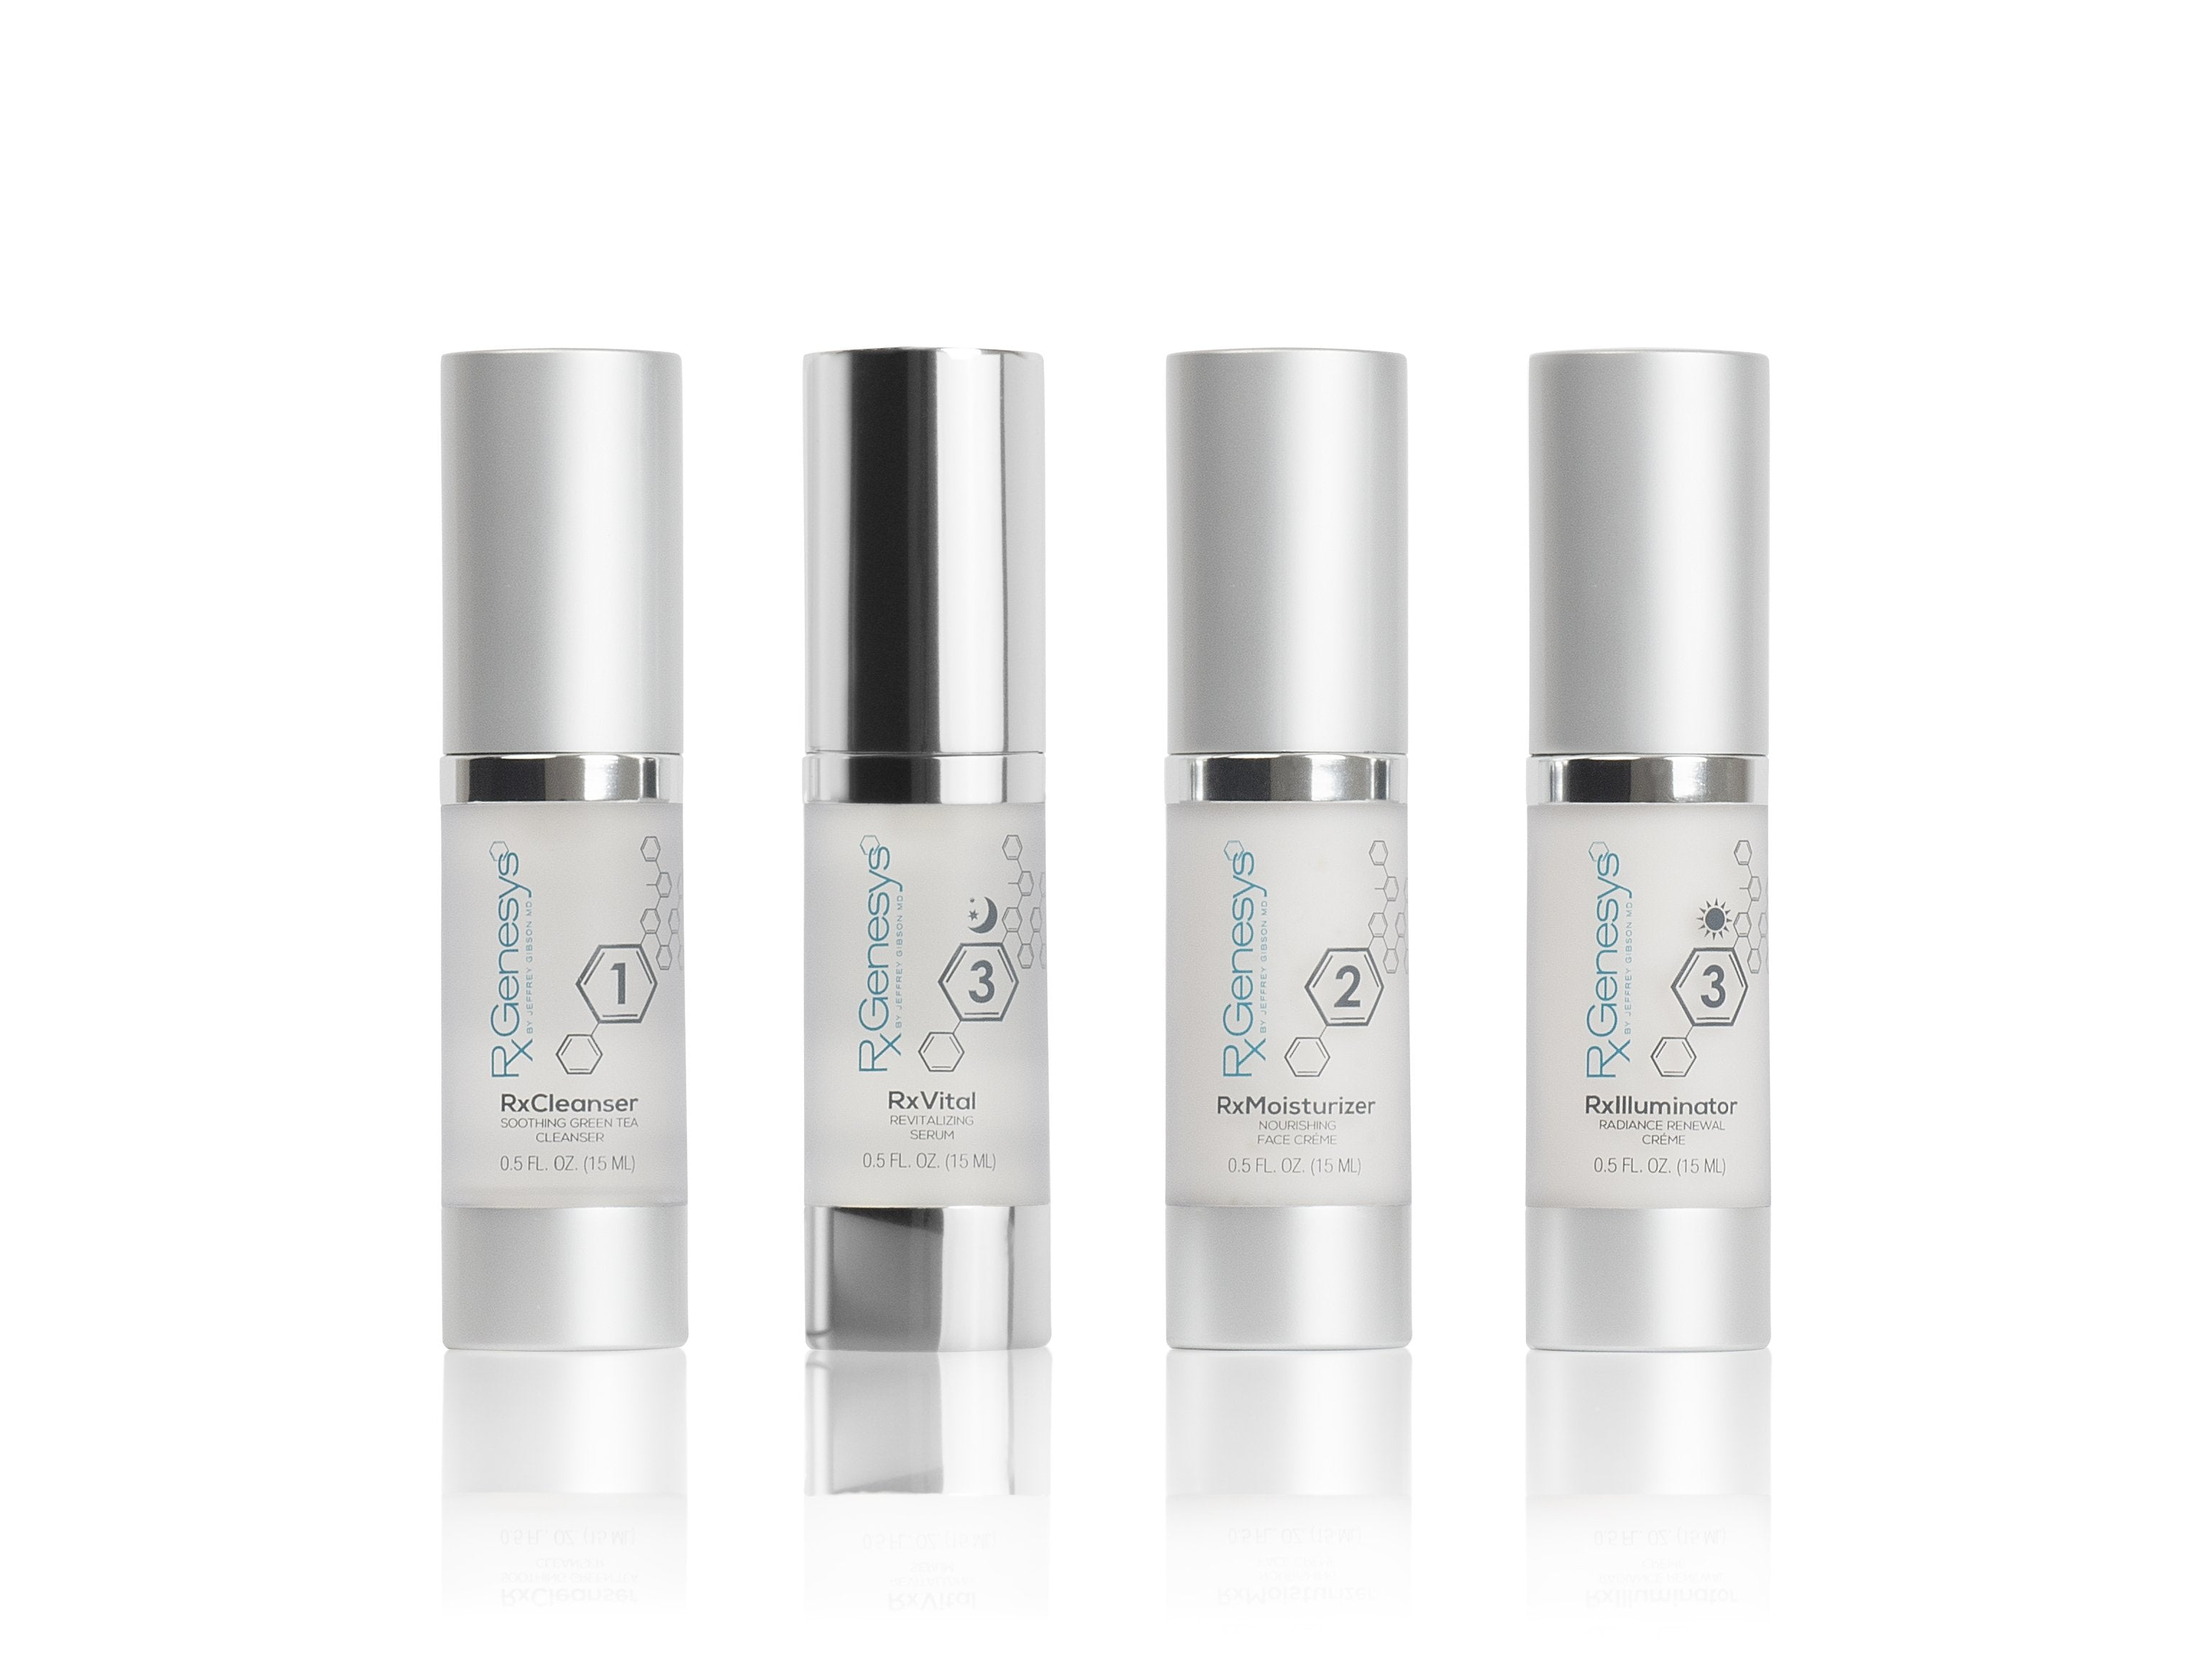 RxGenesys Complete Anti-Aging System (Monthly Membership)